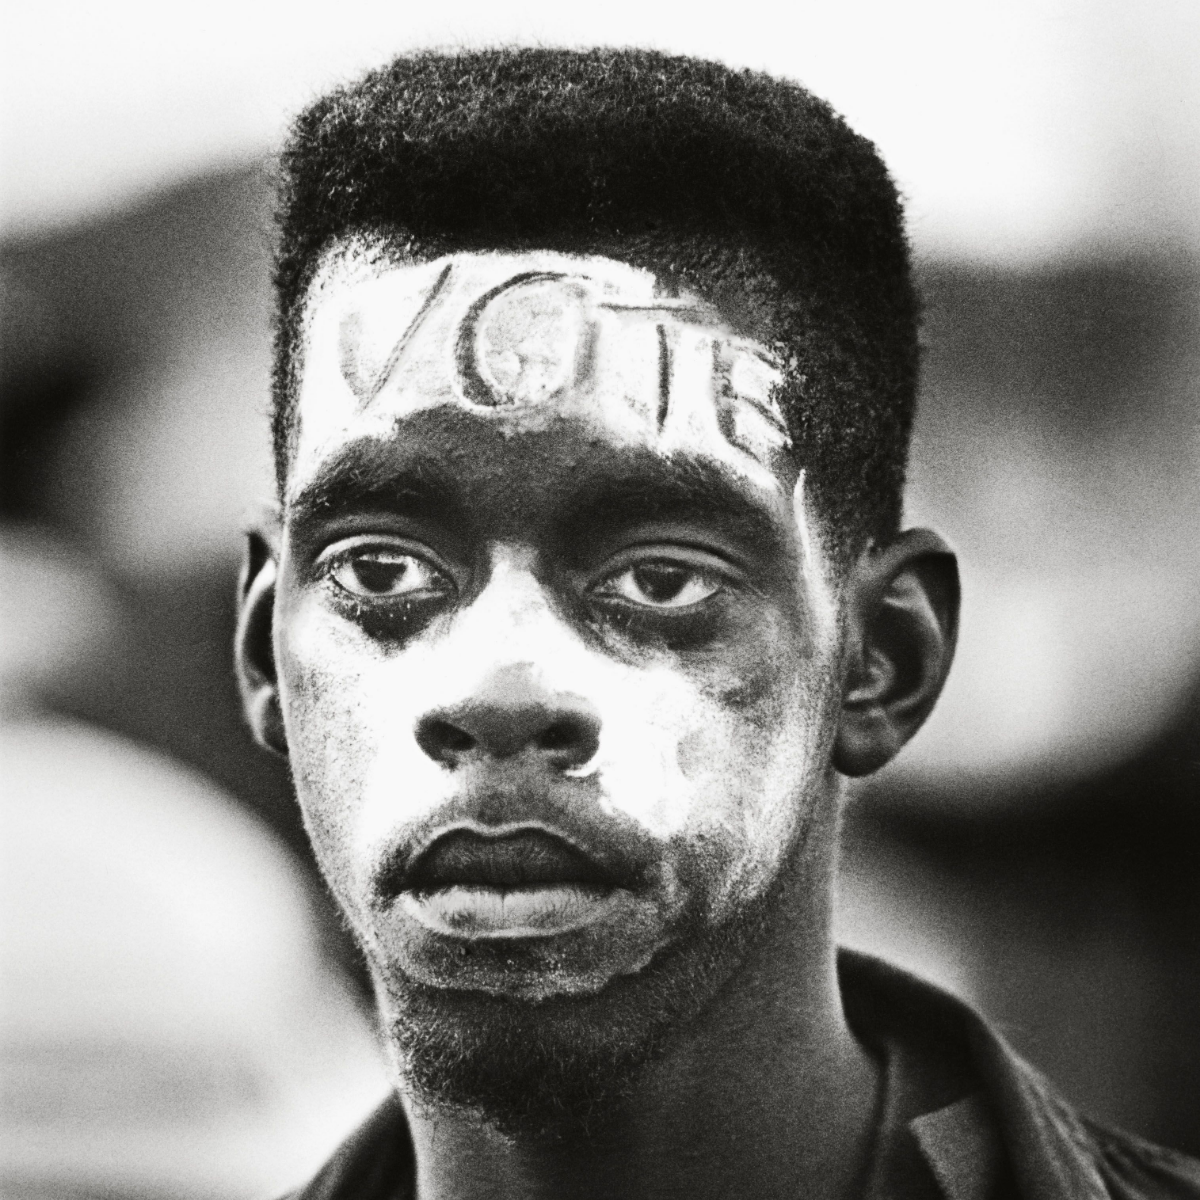 One of Schapiro's favorite images from the era, a young man at a rally for voting rights in Mississippi